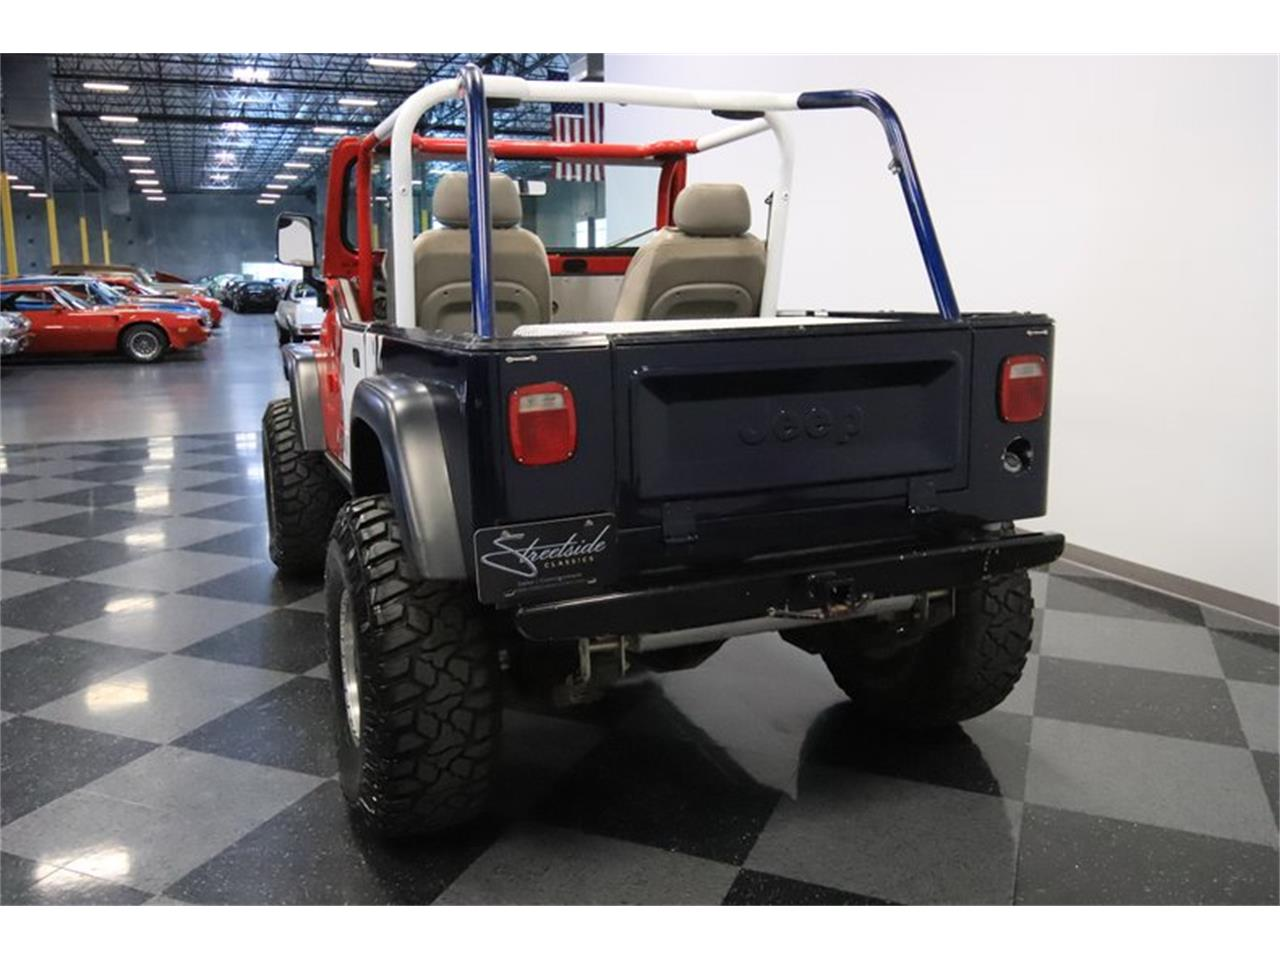 Large Picture of 1983 CJ8 Scrambler - $36,995.00 Offered by Streetside Classics - Phoenix - Q5HM